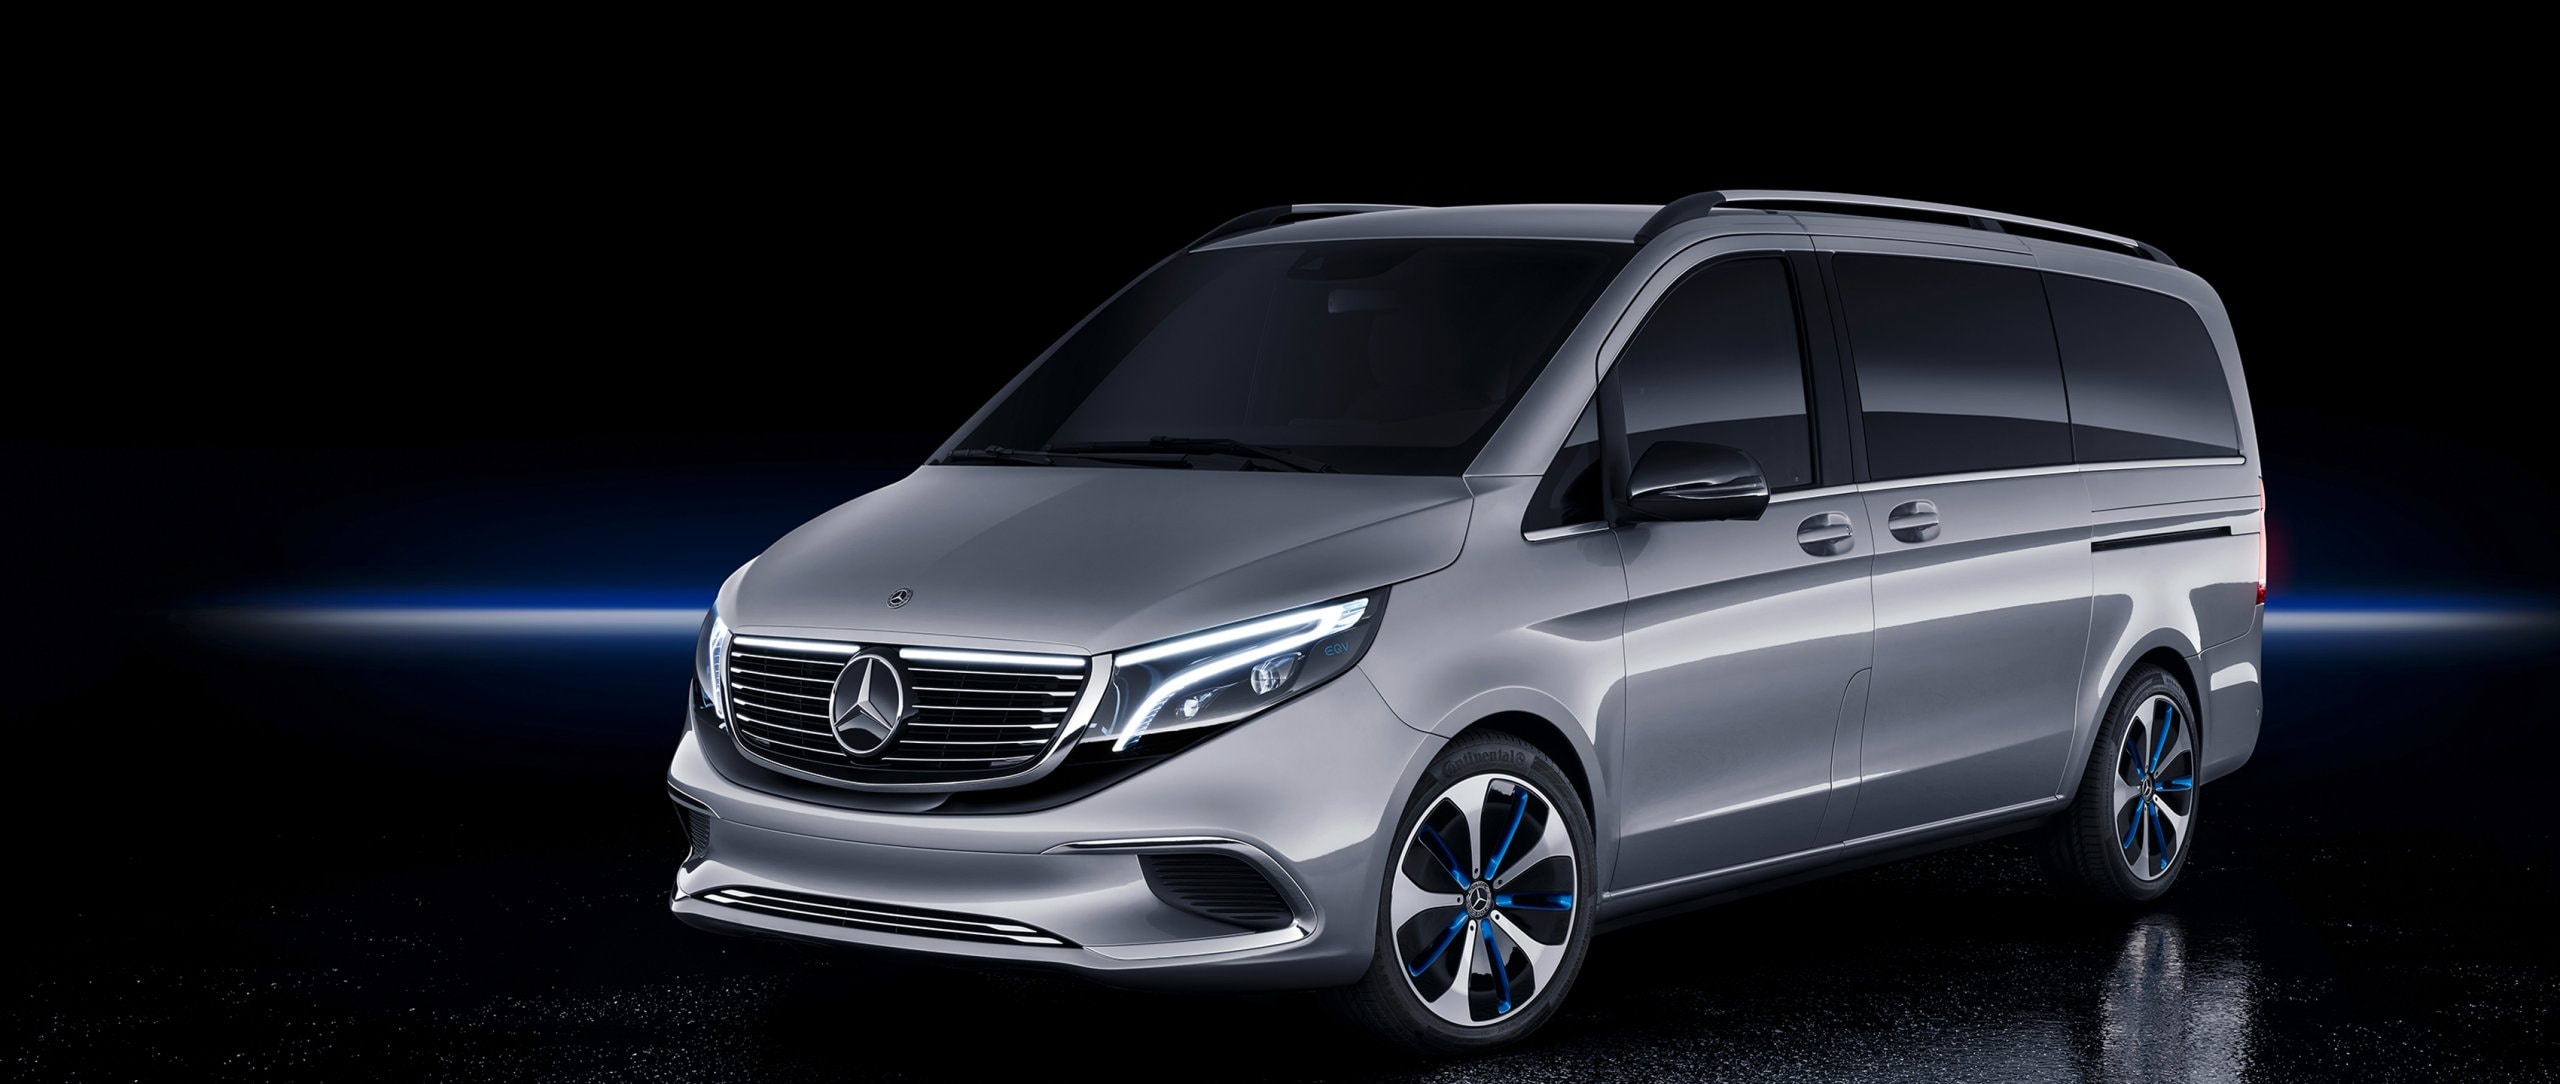 Side view of the new Mercedes-Benz Concept EQV.